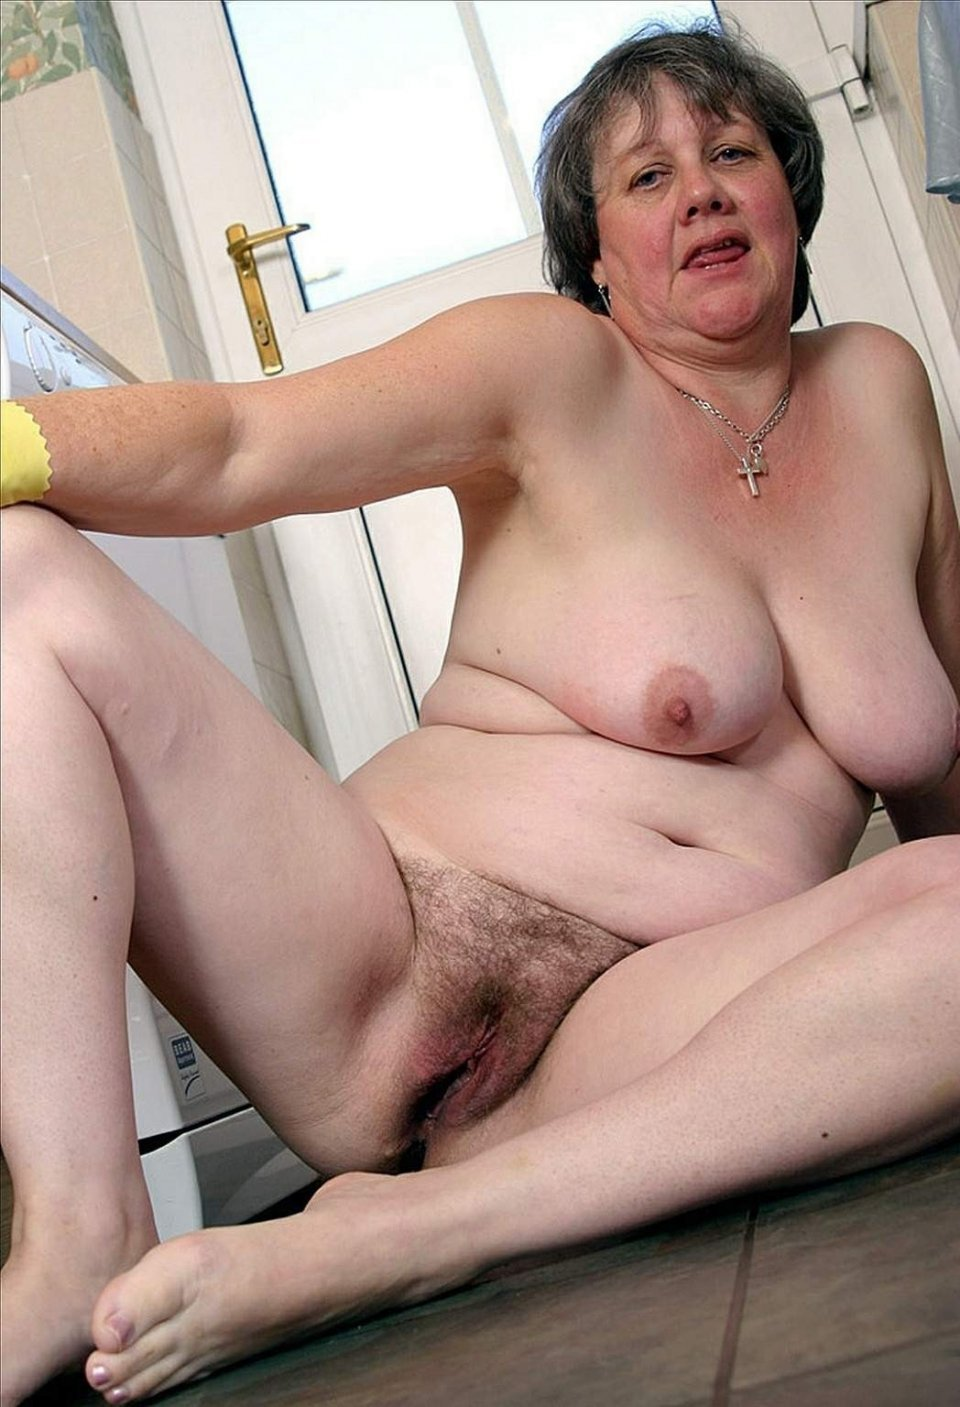 best of Granny porn hairy very